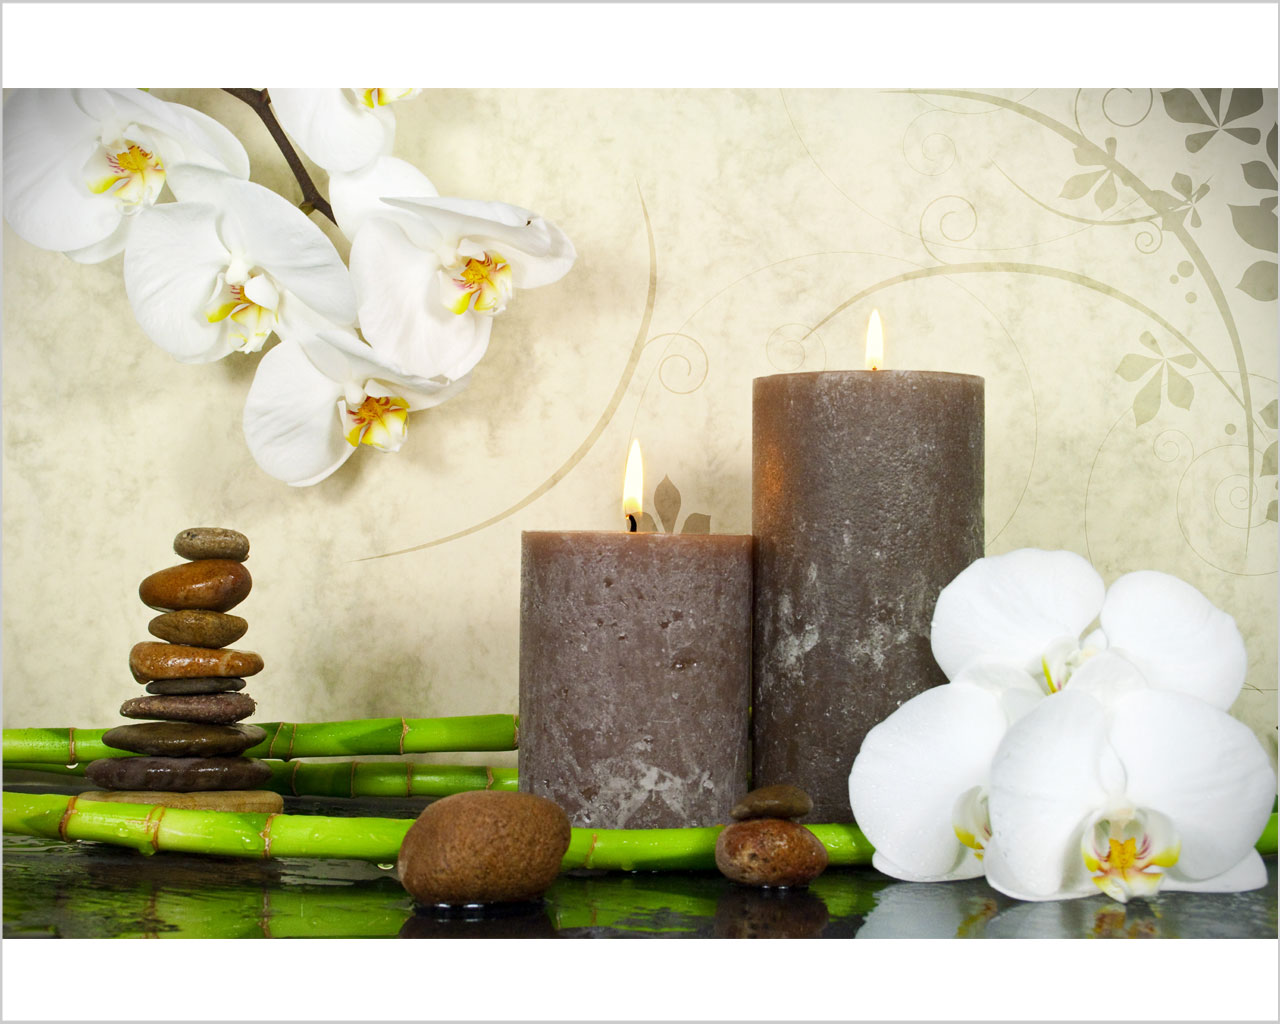 Candele E Orchidee Benessere St a Su Tela moreover Draught Clipart furthermore Red Lady Papaya Seed Taiwan Origin Id 1720224 in addition 5954121955 furthermore Tao Tau Sugar Cane. on bamboo orchid